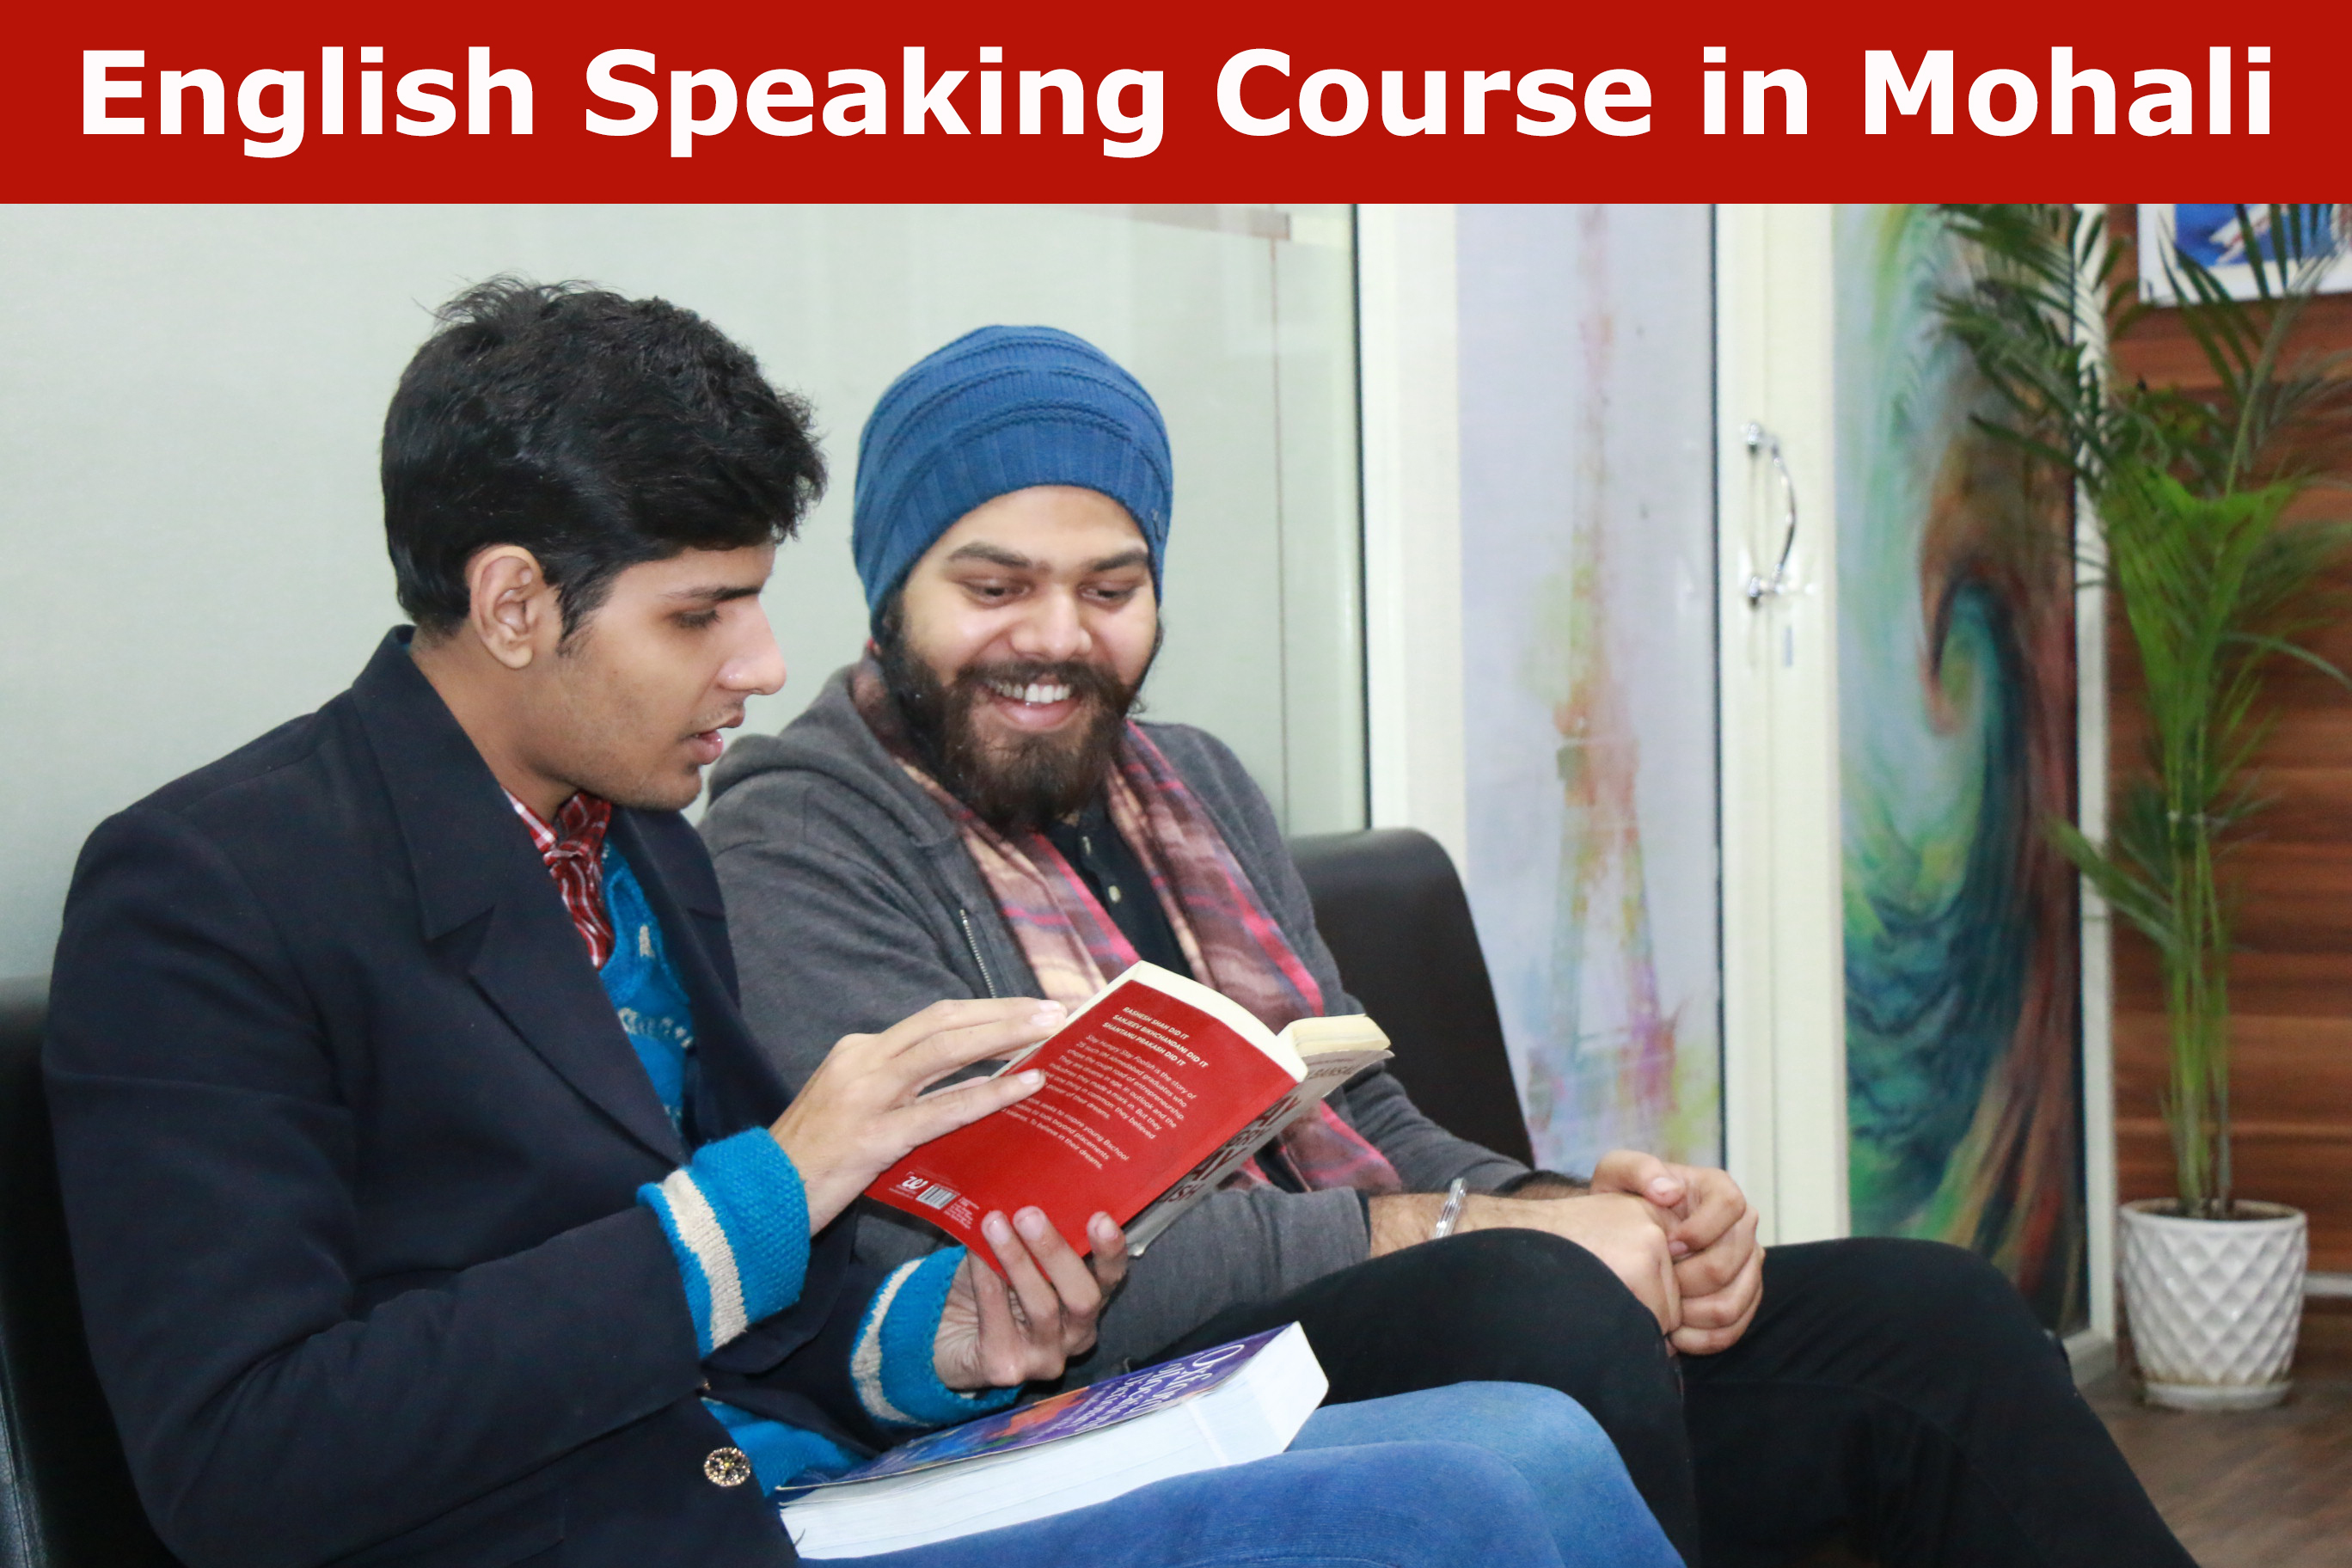 English Speaking Course in Mohali